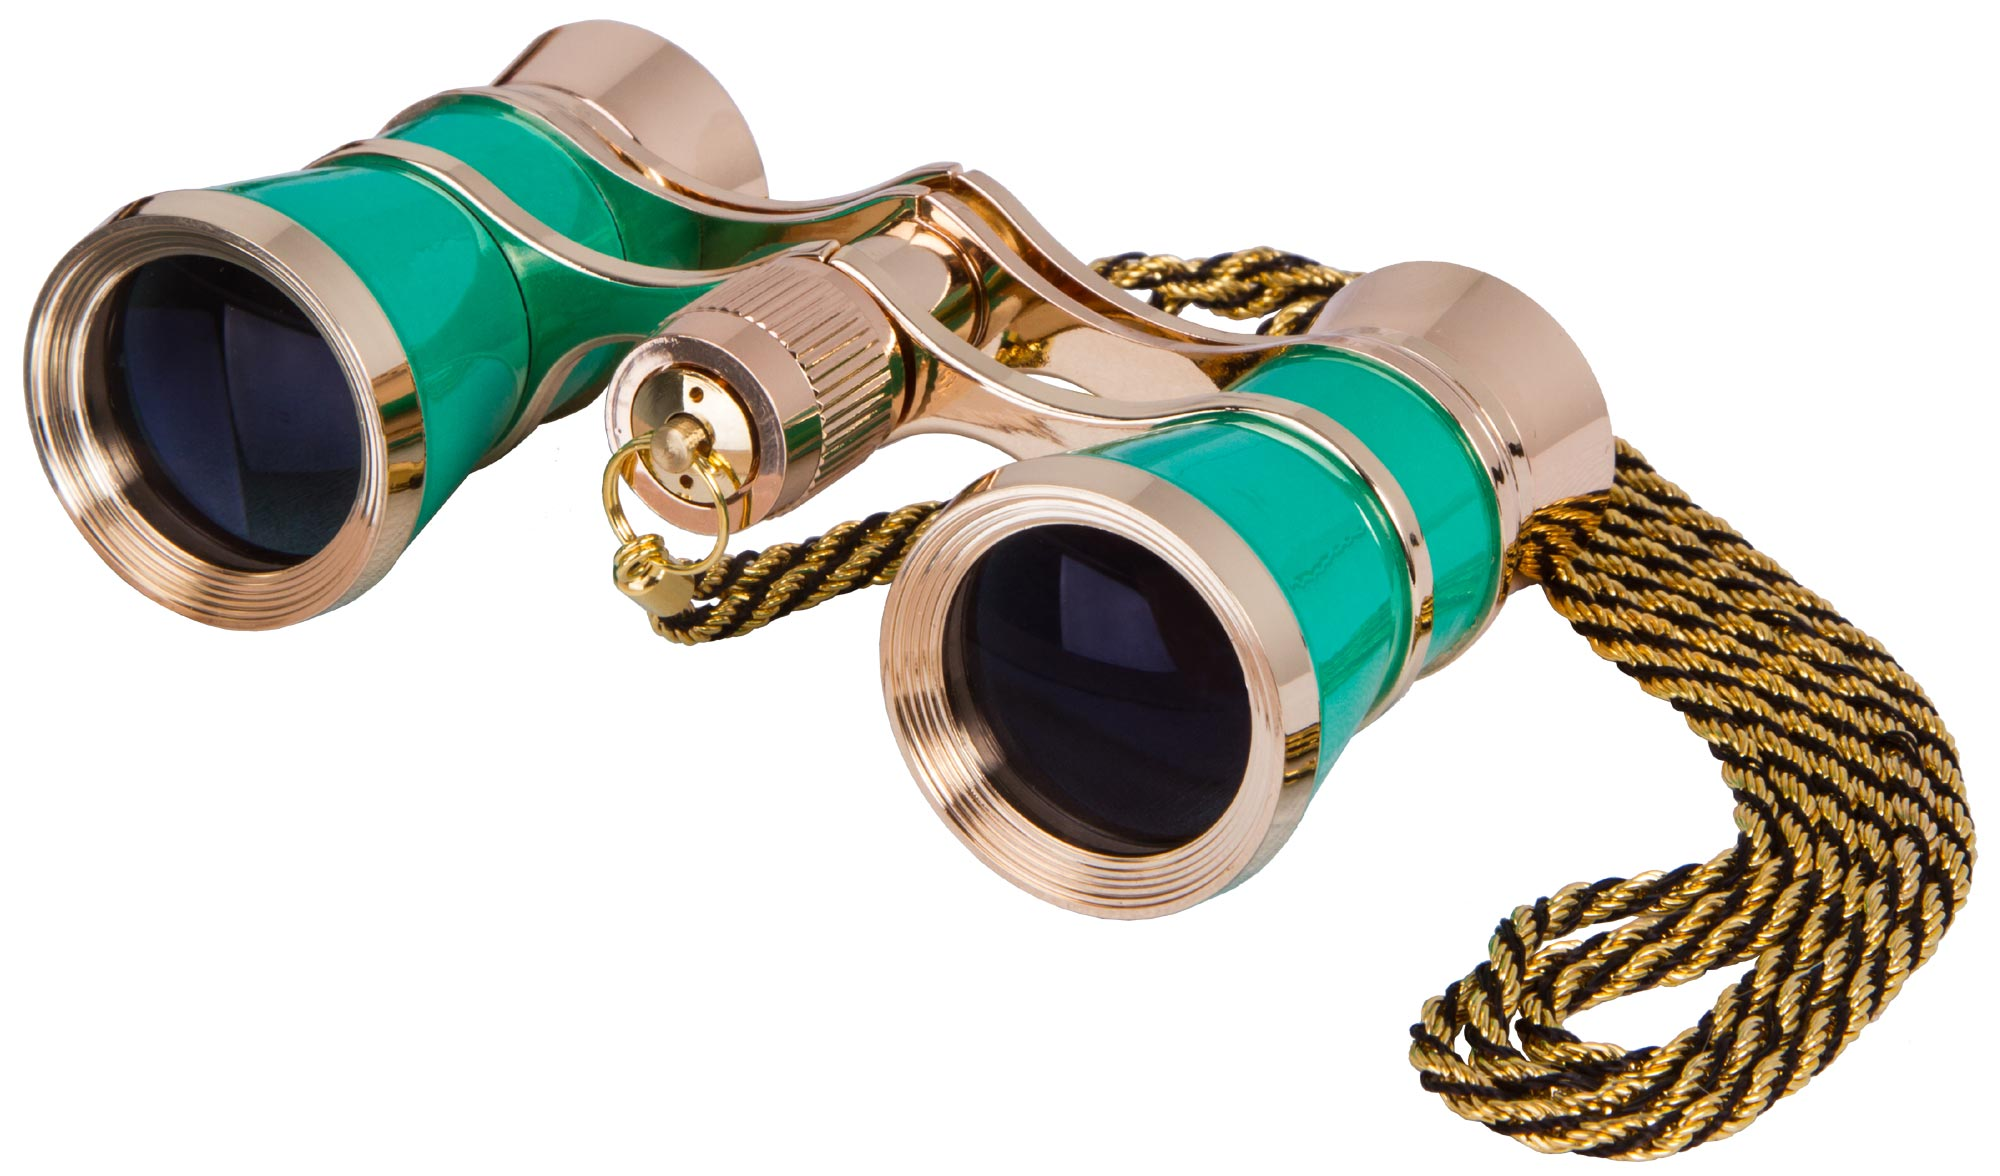 Levenhuk Broadway 325C Blue Wave Opera Glasses with a chain picture